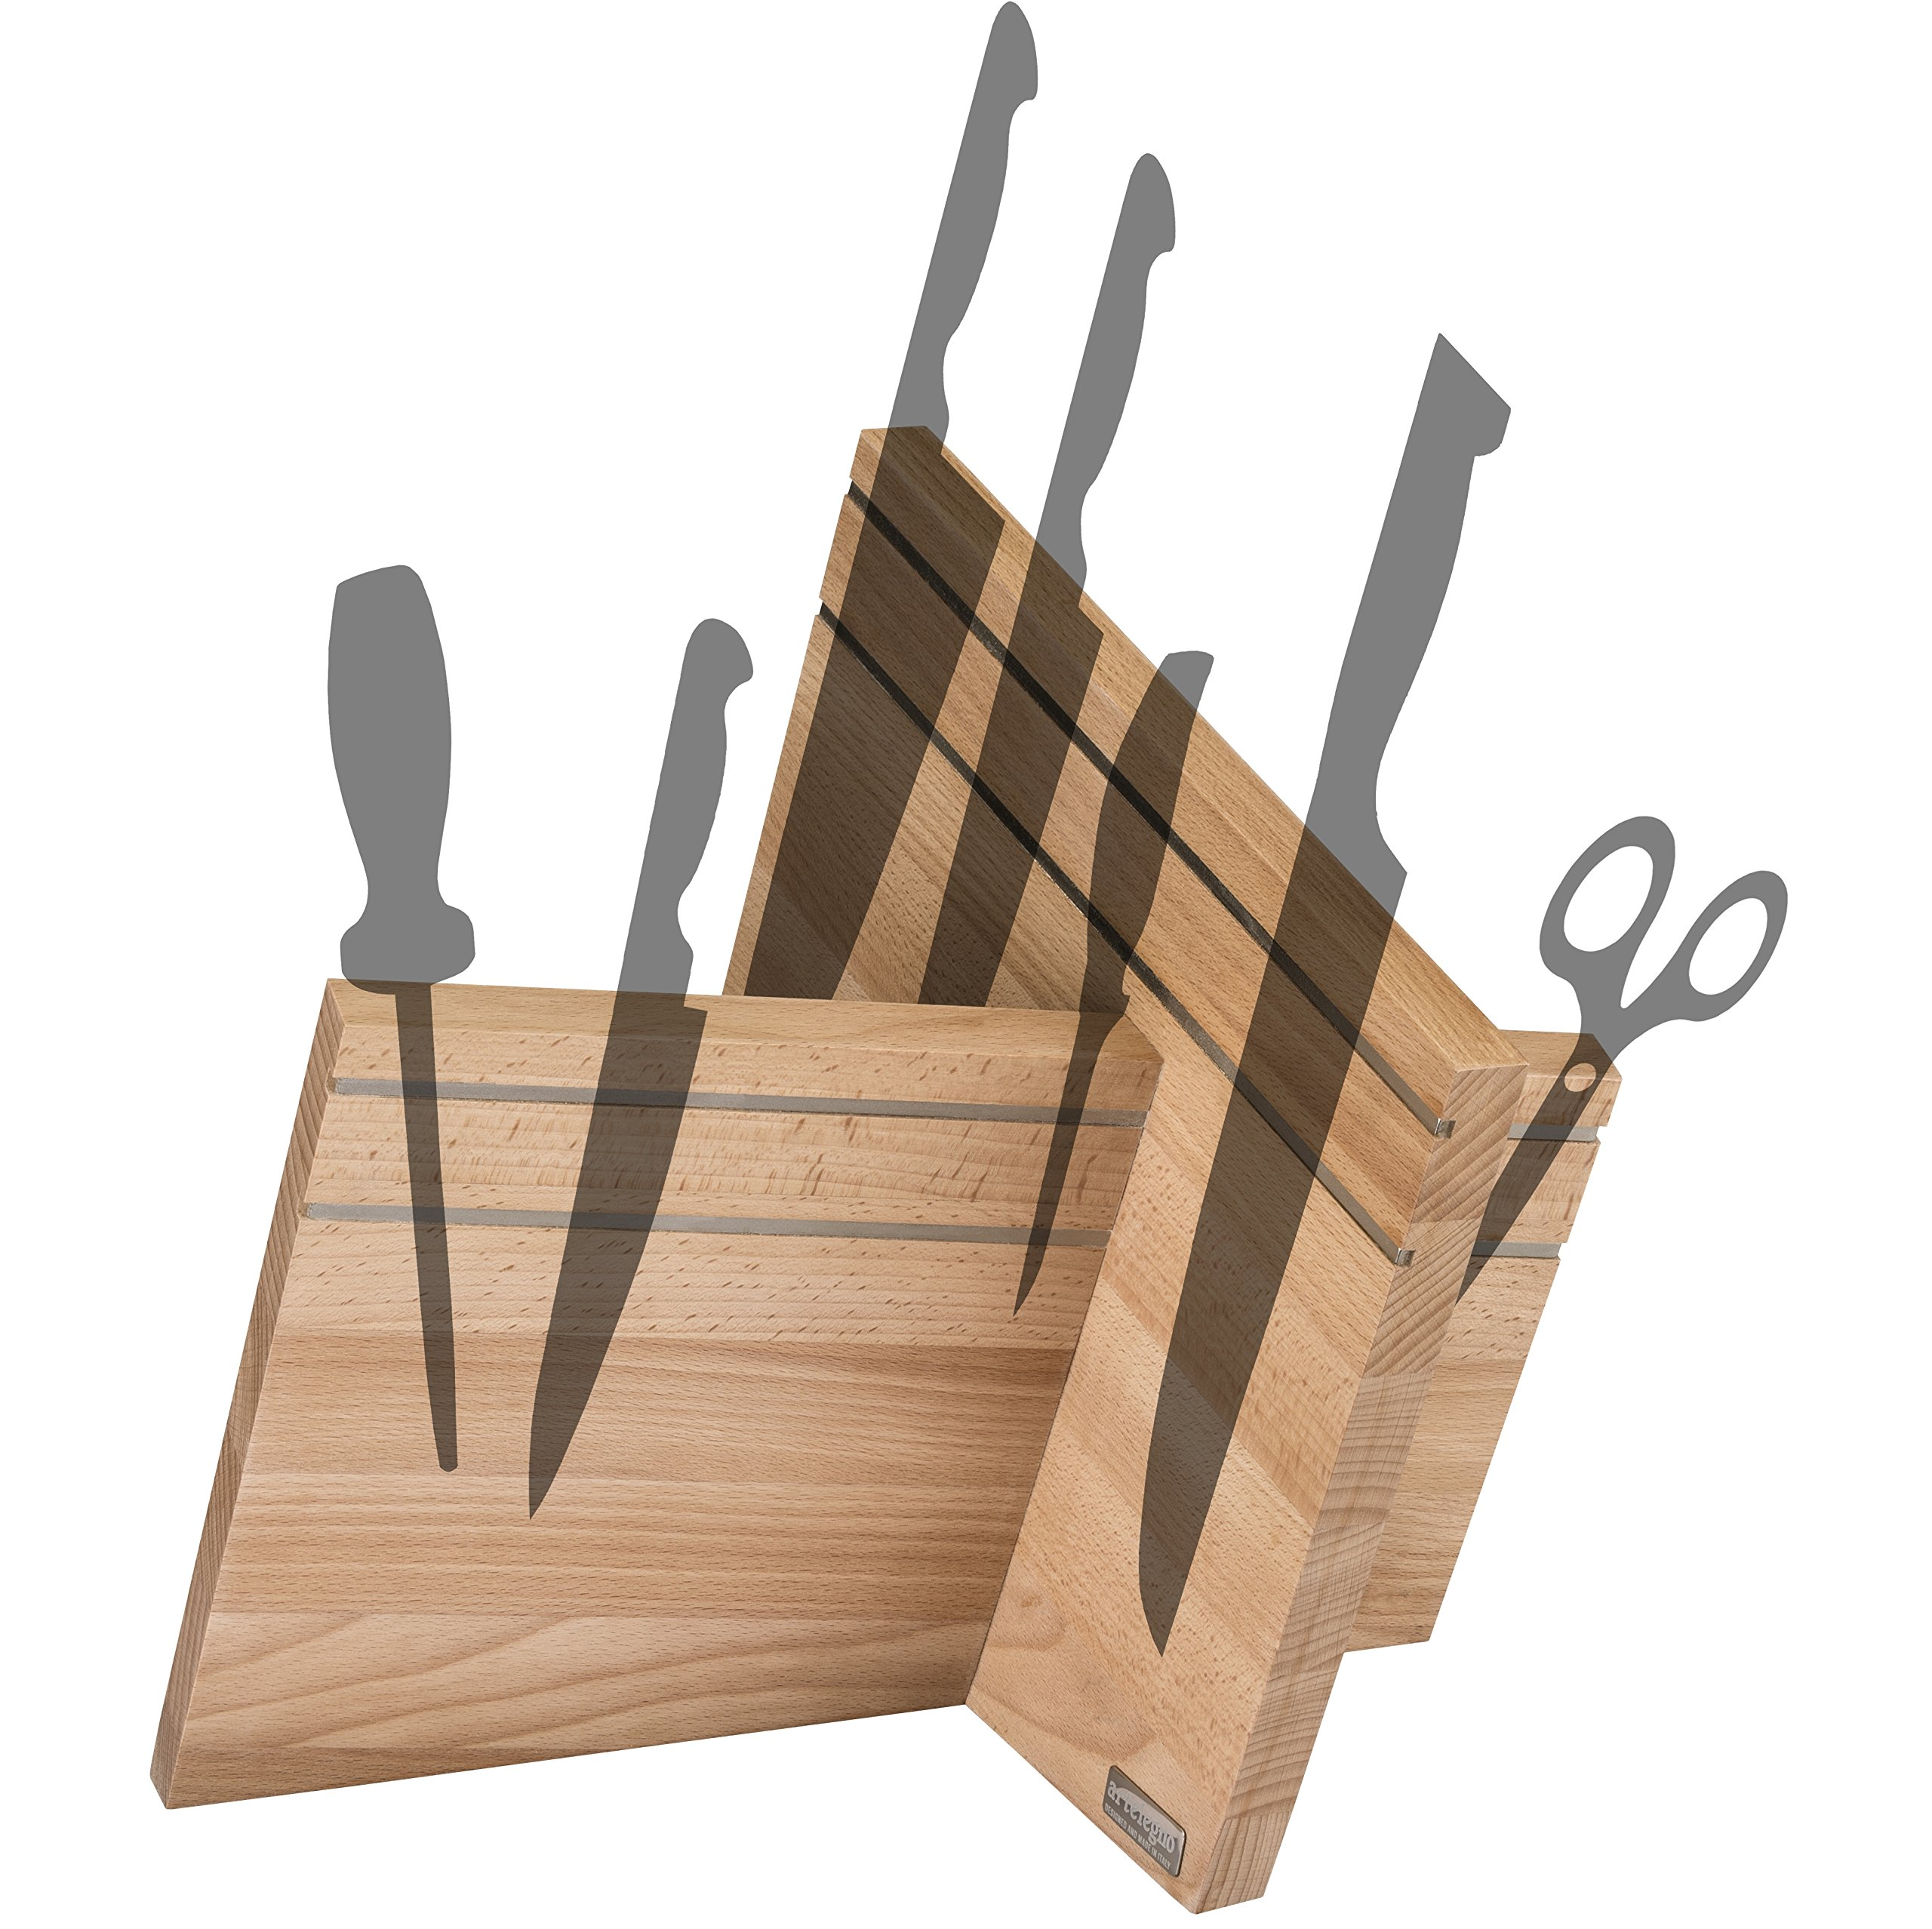 Artelegno  Artisian Knife Block Solid Beech Wood Magnetic, Display and Protect up to 16 High-End Knives Elegantly, Luxurious Italian Milano Collection by Master Craftsmen, Eco-friendly, Natural Finish